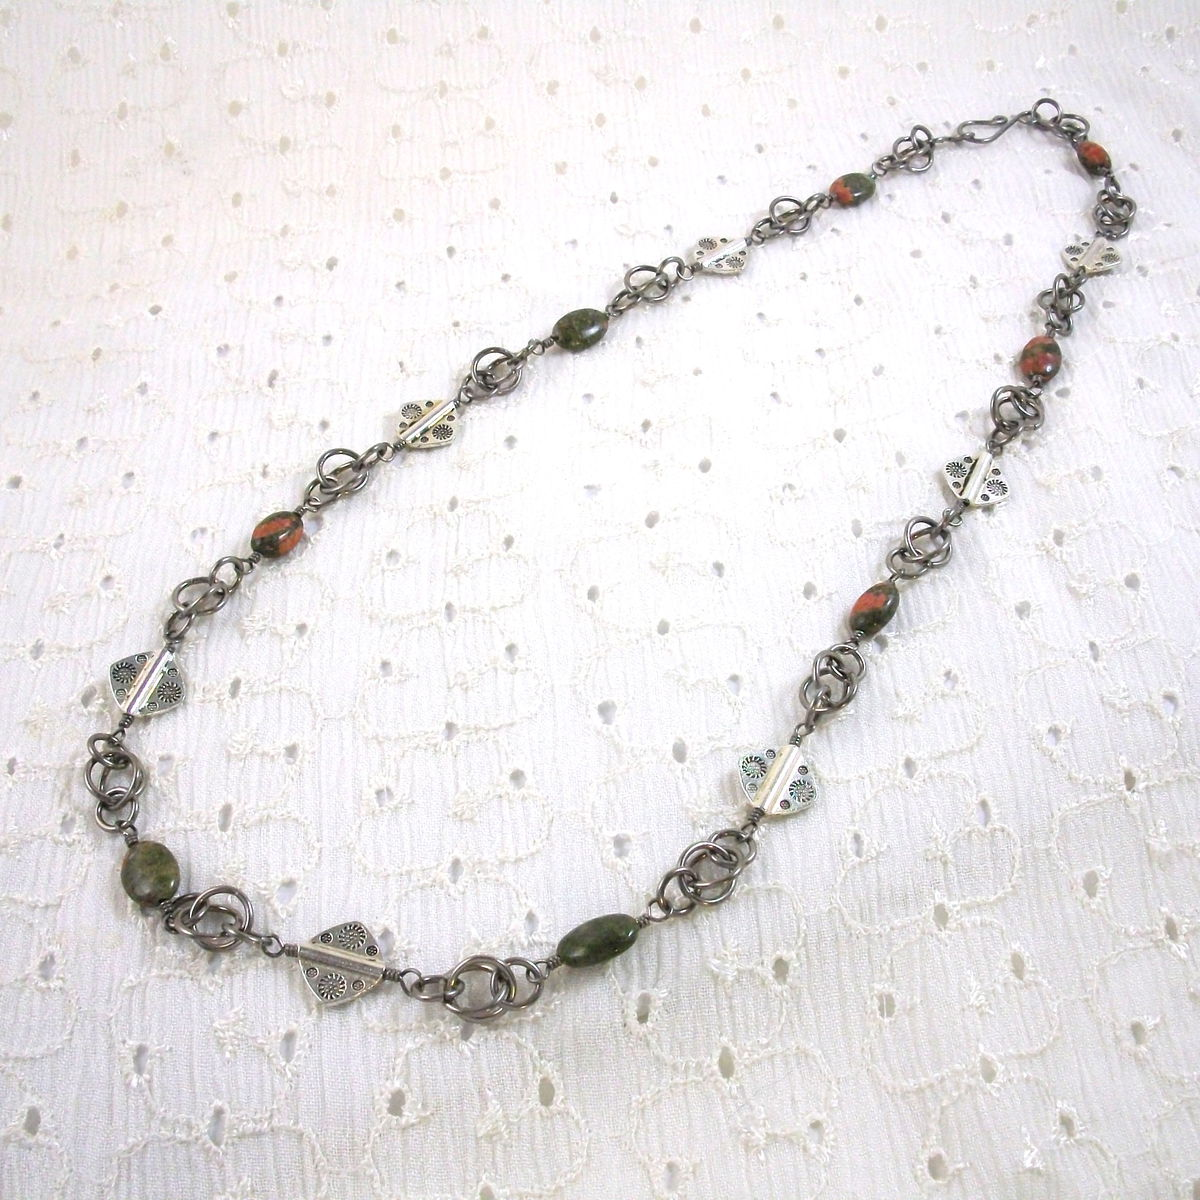 Unakite Necklace with Handmade Chain and Pewter Bead Accents - product images  of